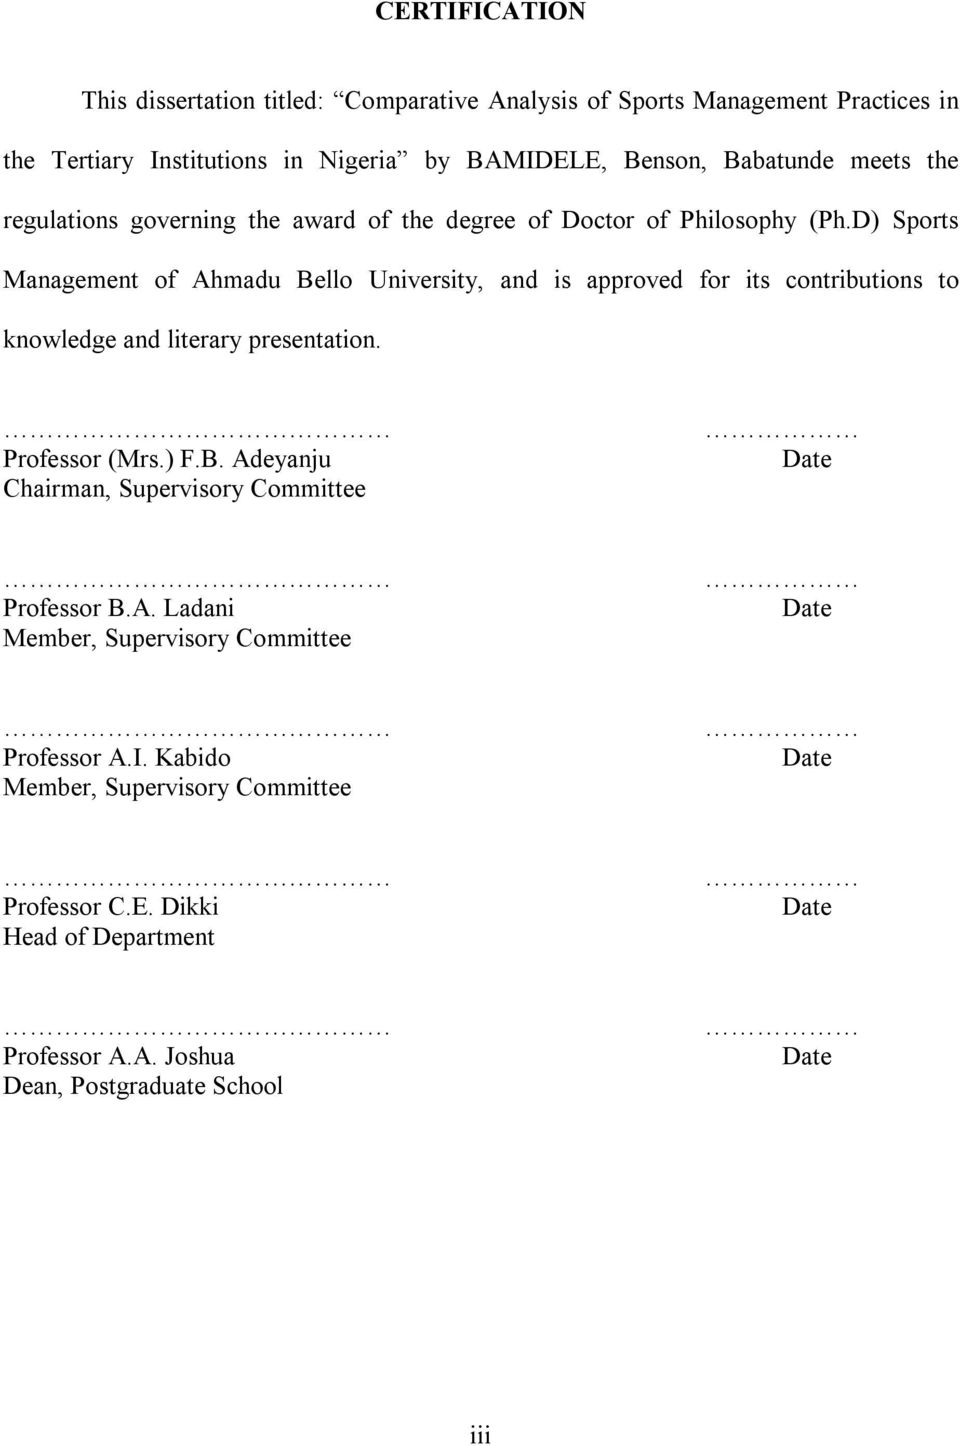 D) Sports Management of Ahmadu Bello University, and is approved for its contributions to knowledge and literary presentation. Professor (Mrs.) F.B. Adeyanju Chairman, Supervisory Committee Date Professor B.